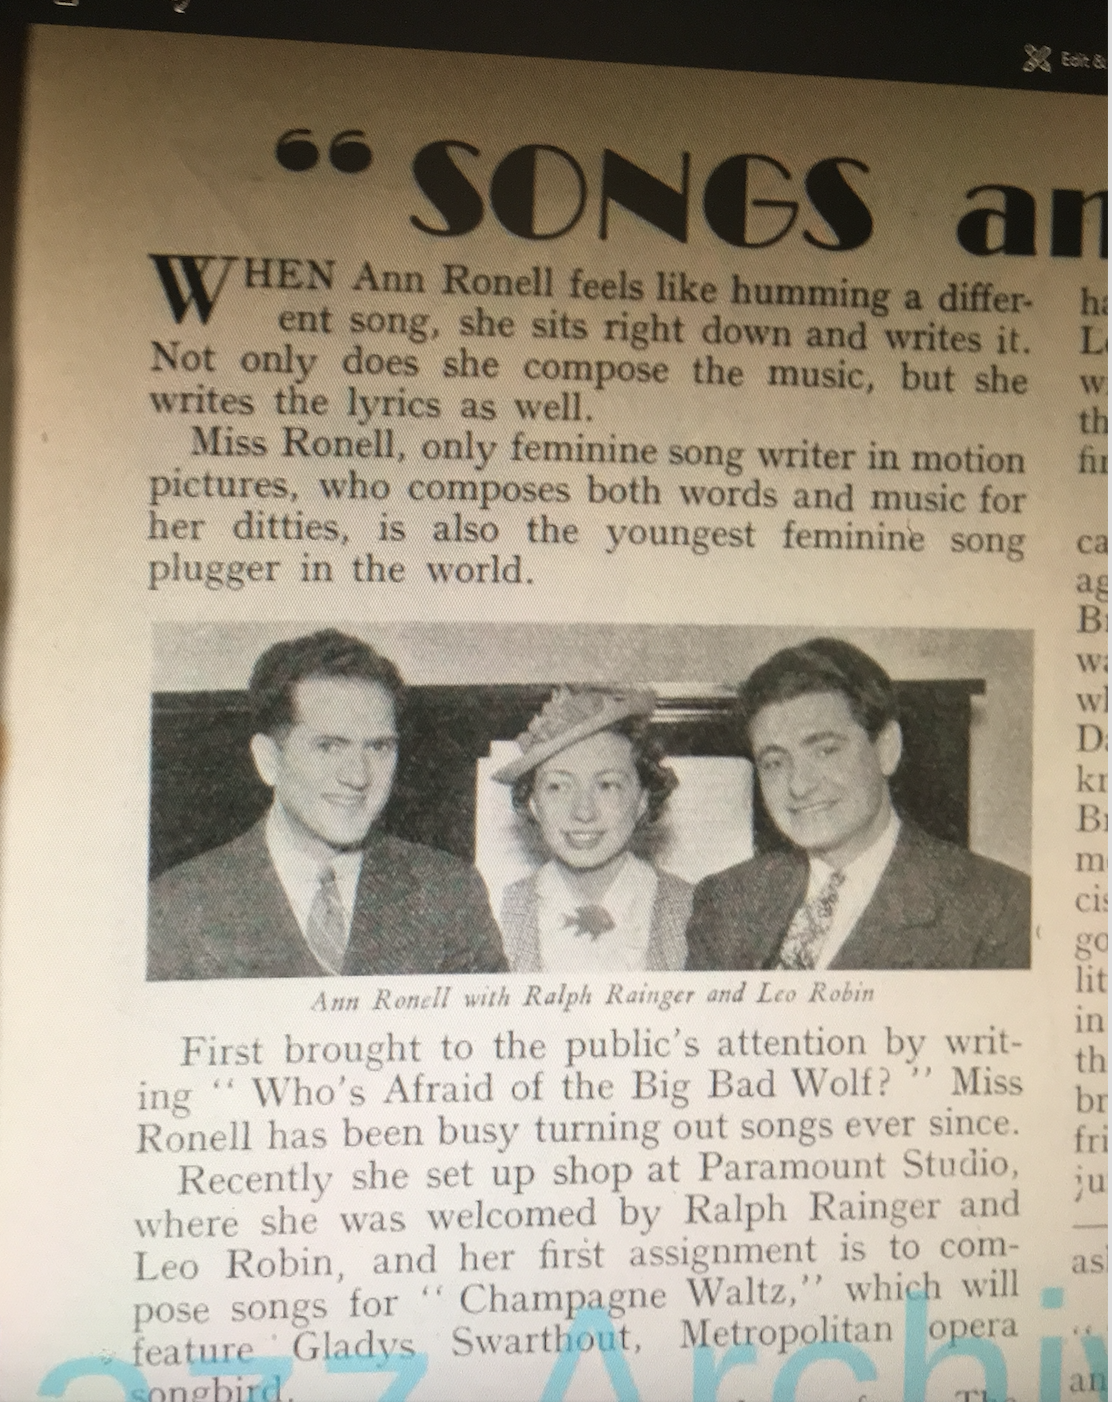 Reported by Music News & Dance Band in August, 1936